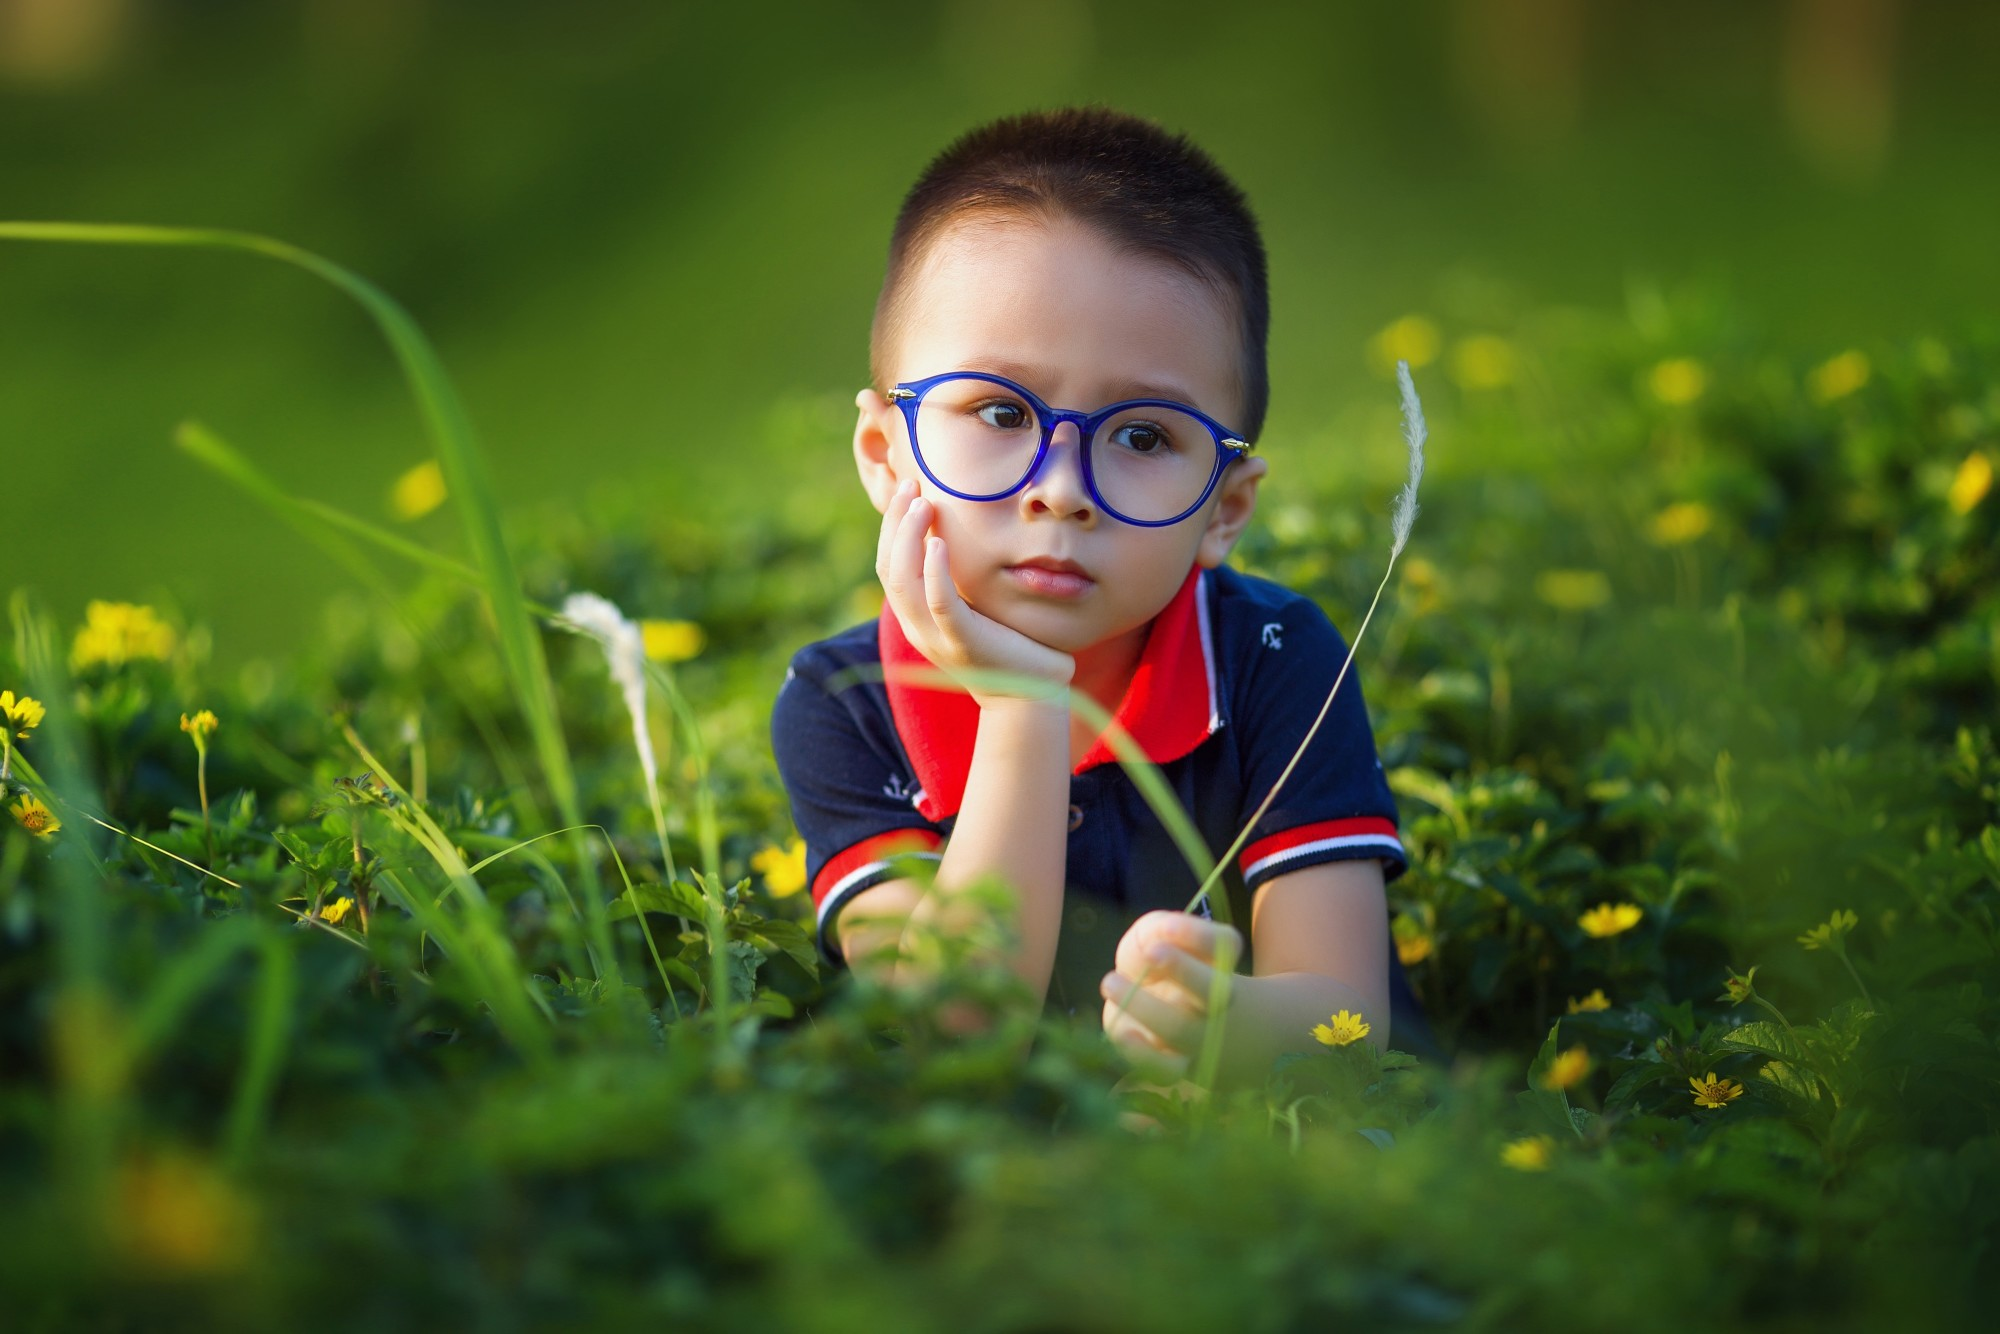 Smart Kid on a Grassy Field